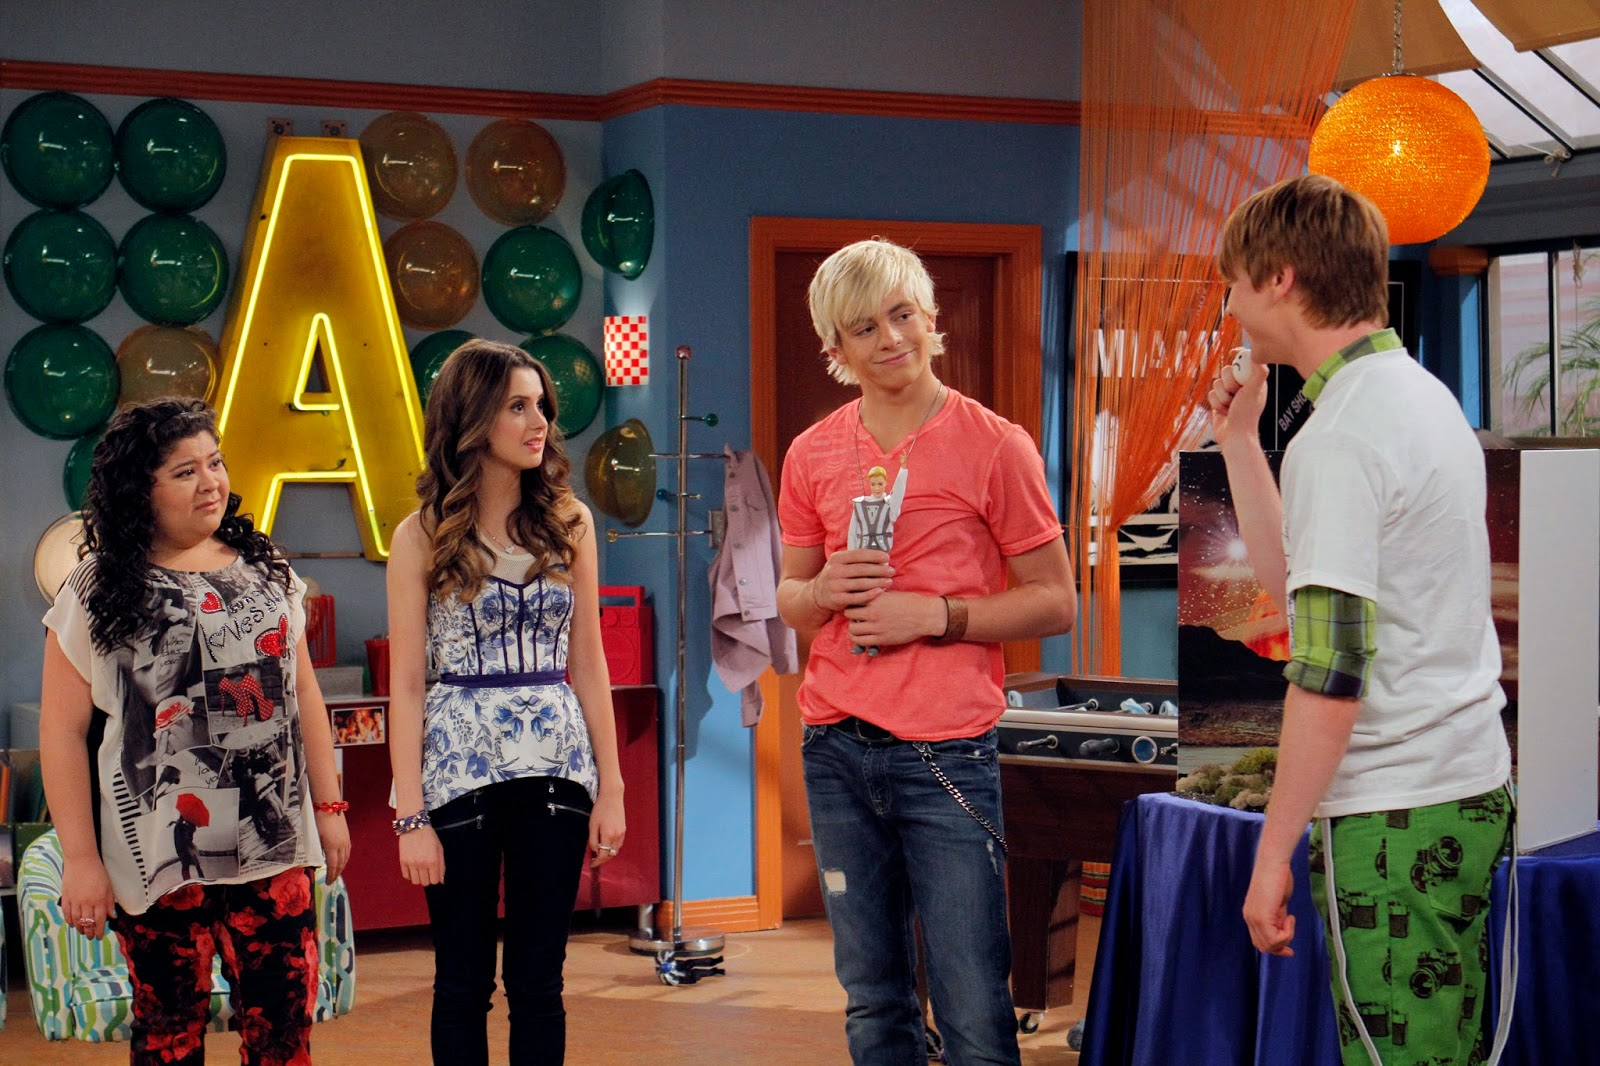 where can i watch austin and ally